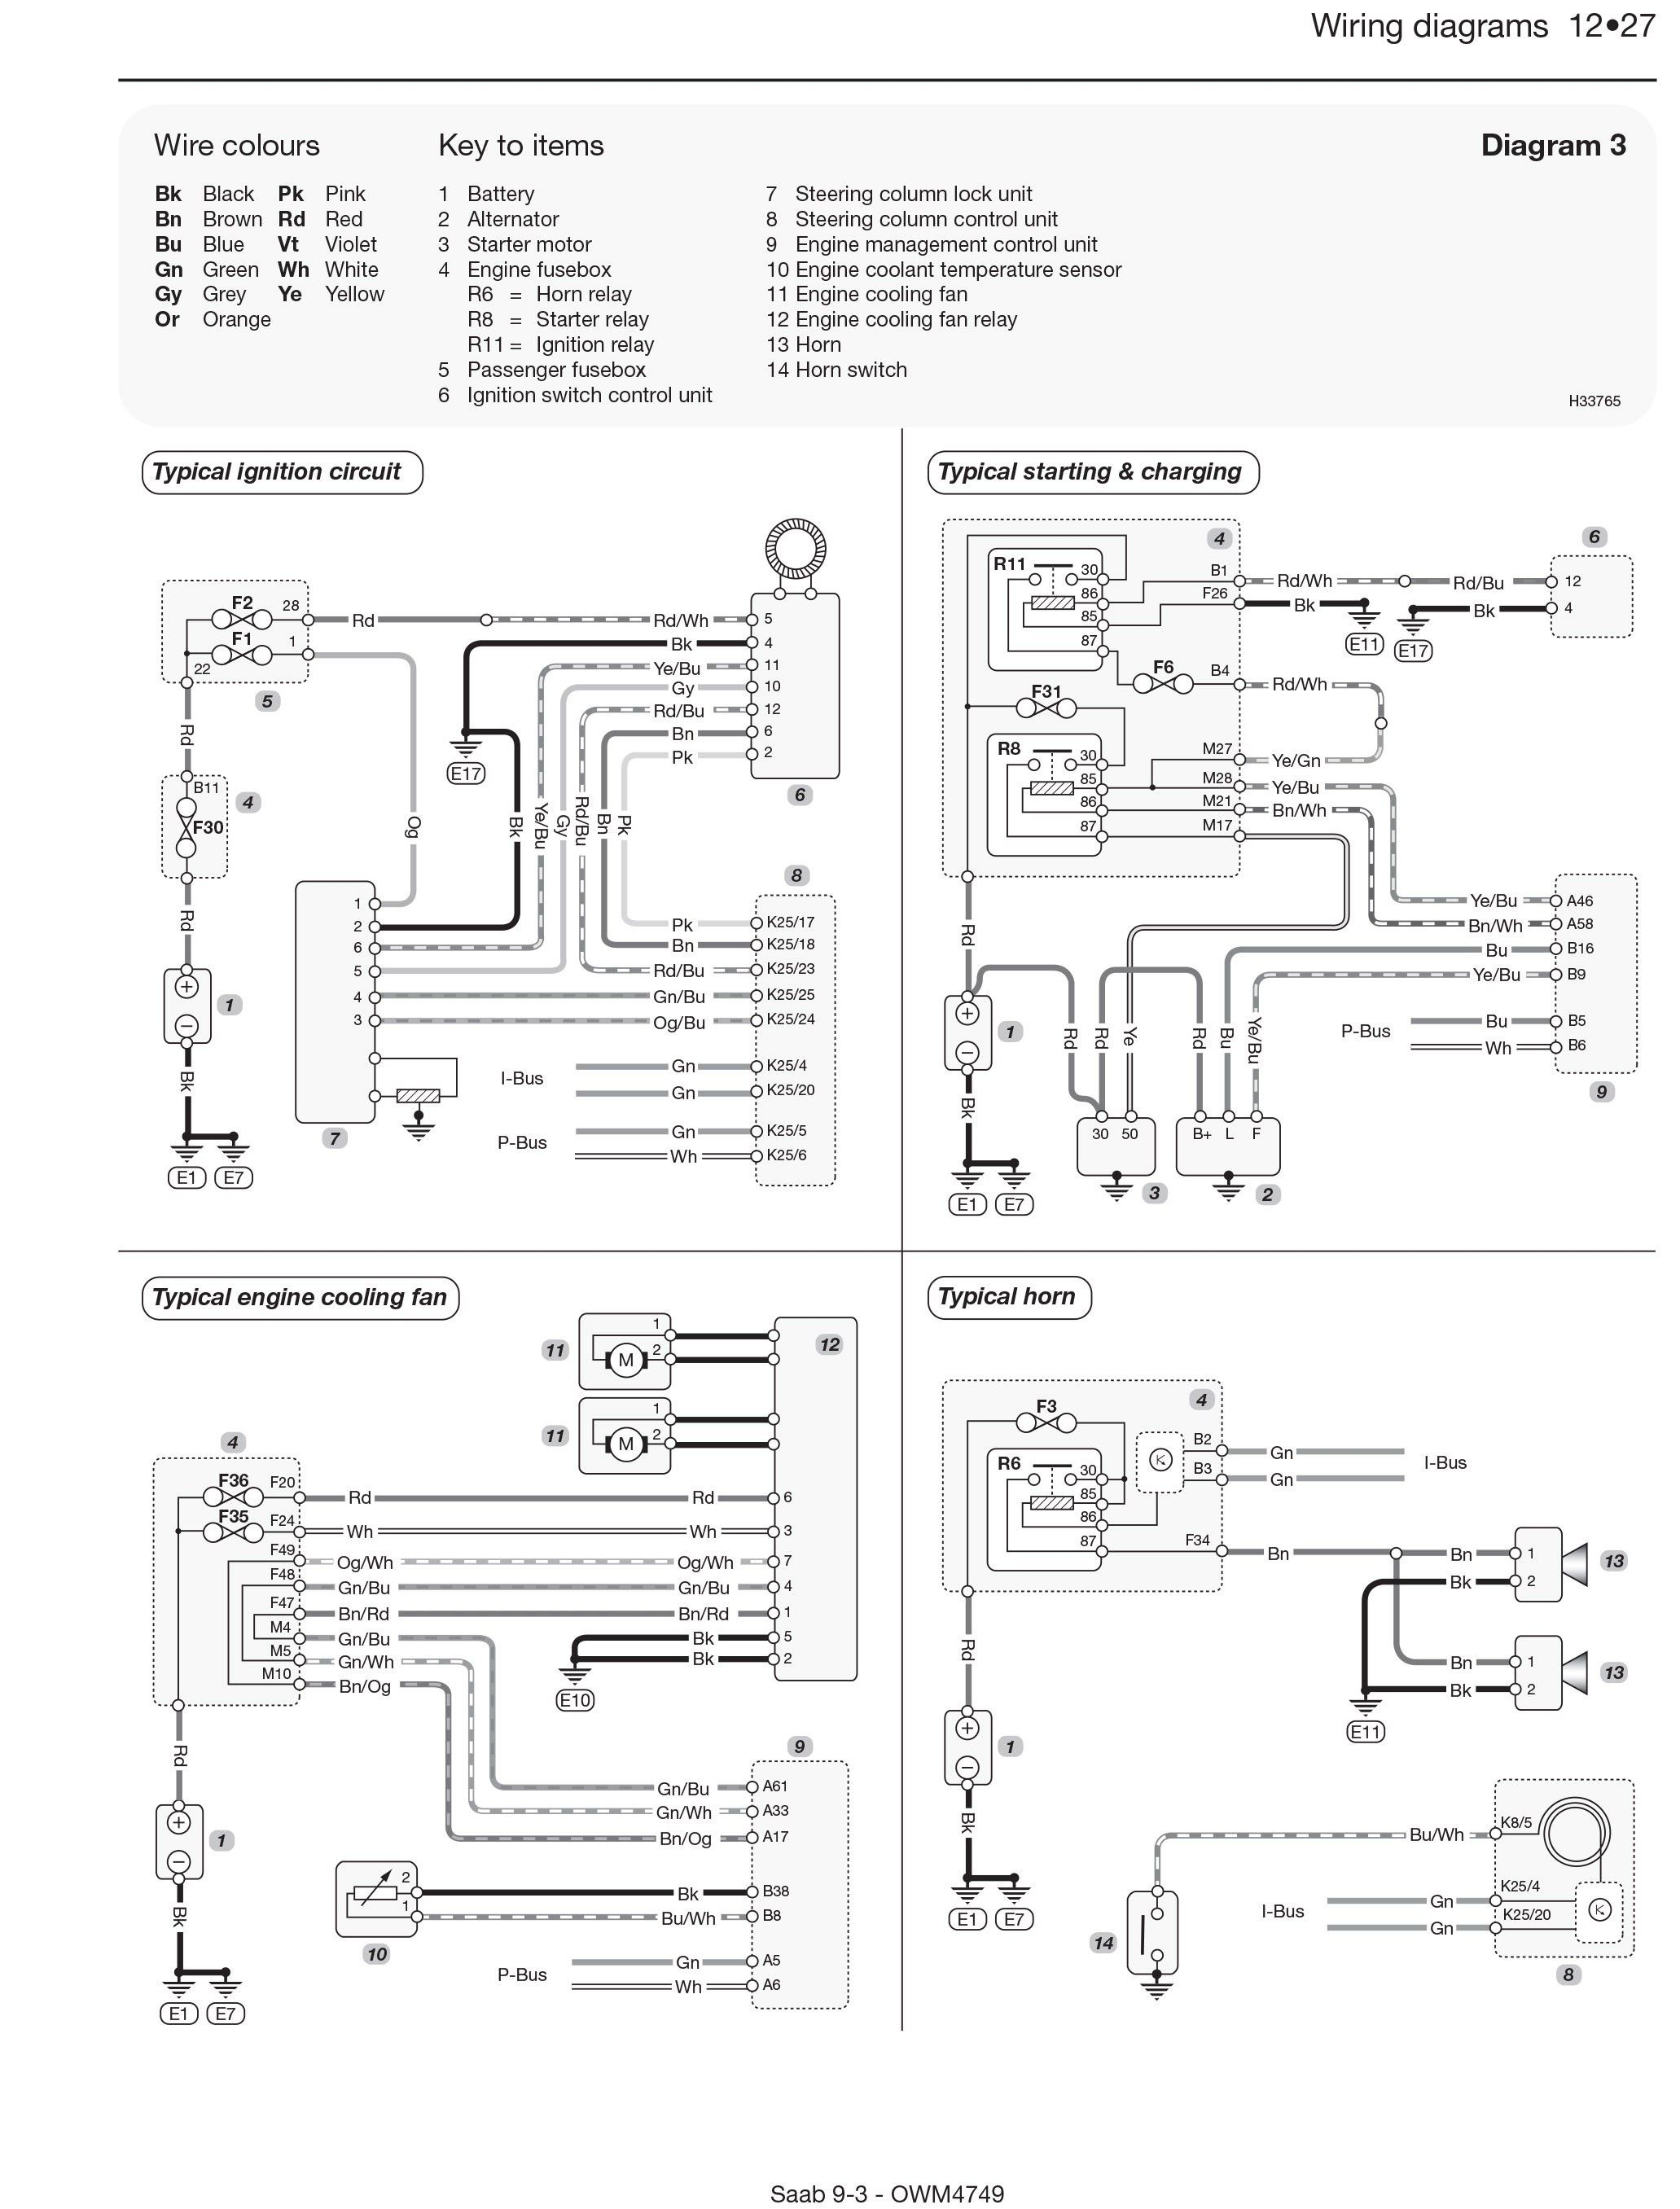 New Bmw F20 Audio Wiring Diagram Bmw New Bmw Alternator